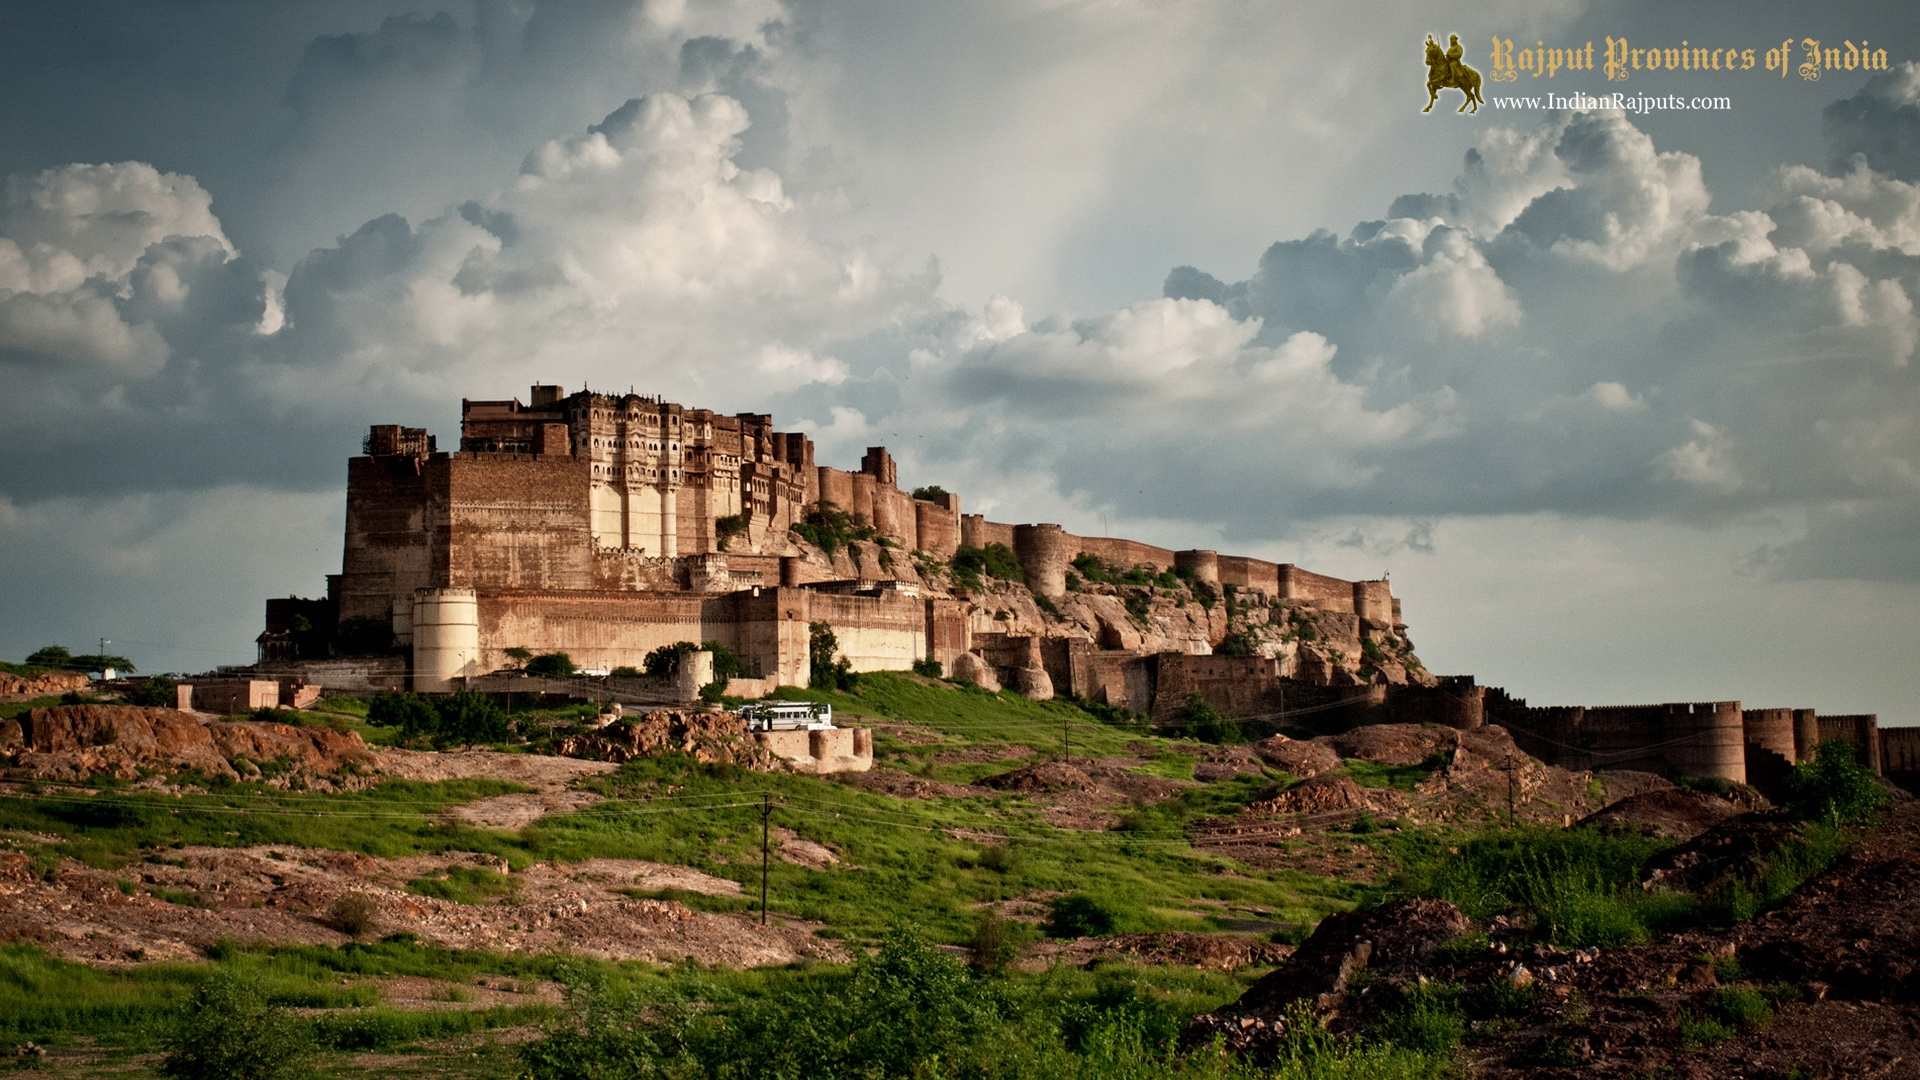 Rajput wallpapers and rajput facebook covers rajput provinces of india wallpaper1024768mehrangarh fort voltagebd Image collections